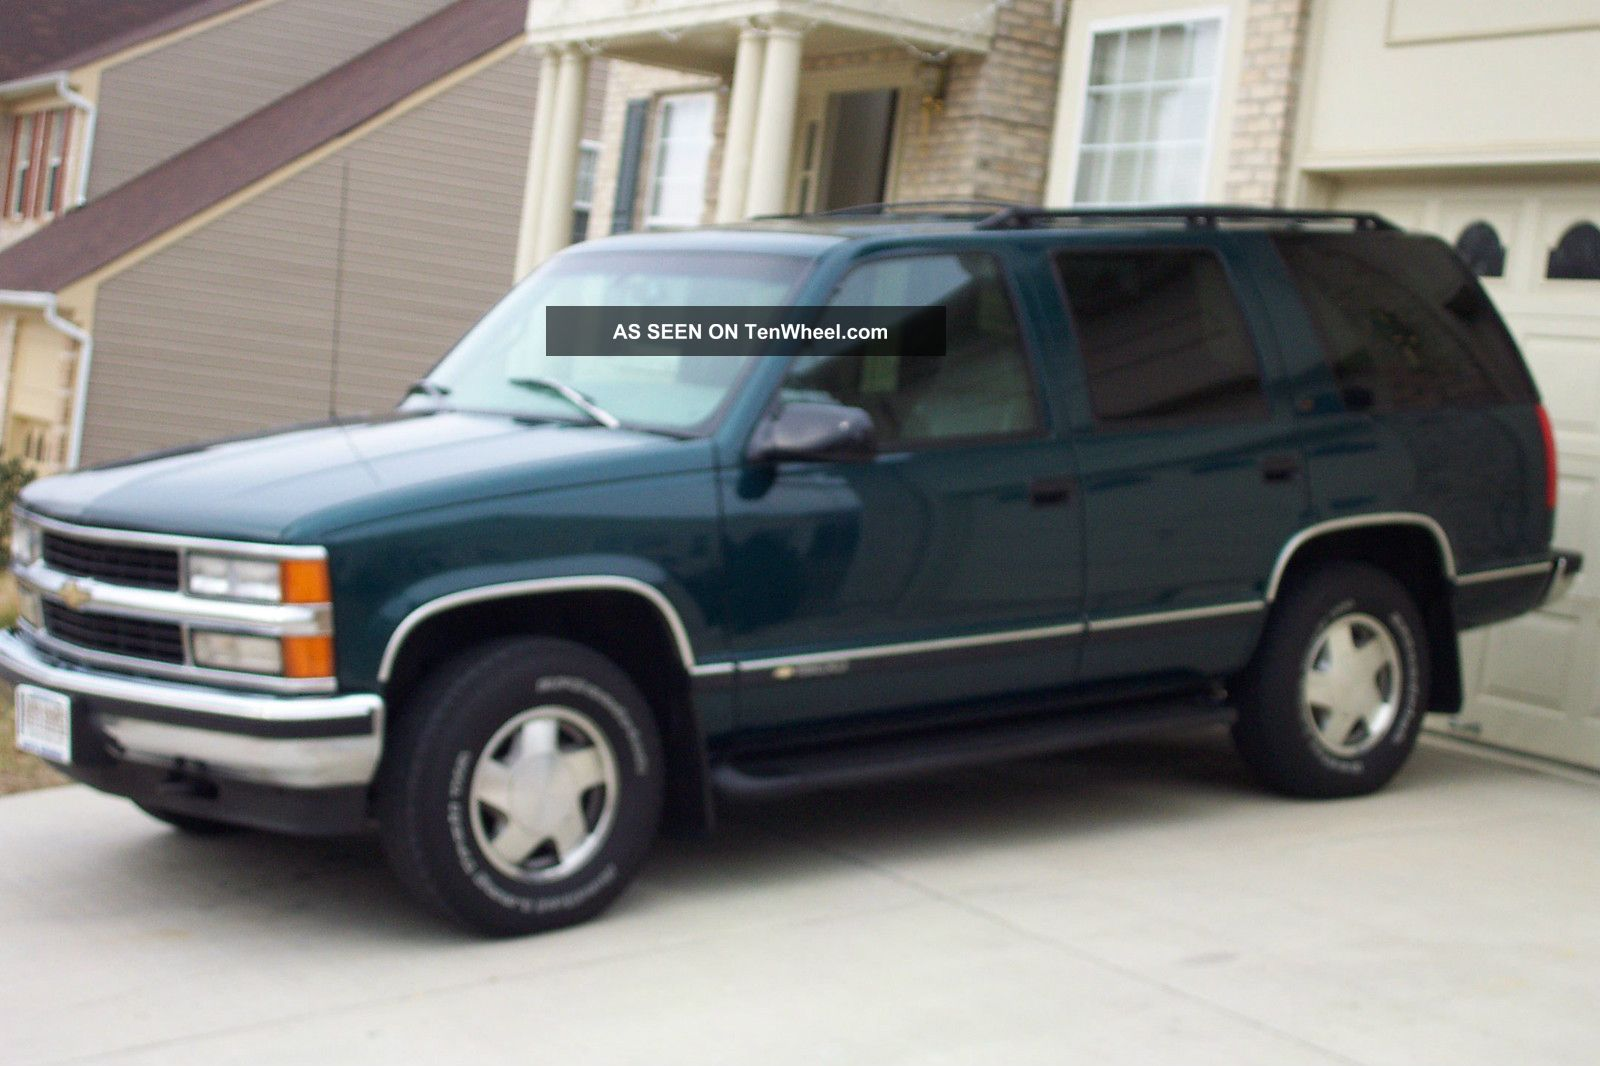 Tahoe 99 chevy tahoe parts : Tahoe » 1997 Chevy Tahoe Parts - Old Chevy Photos Collection, All ...